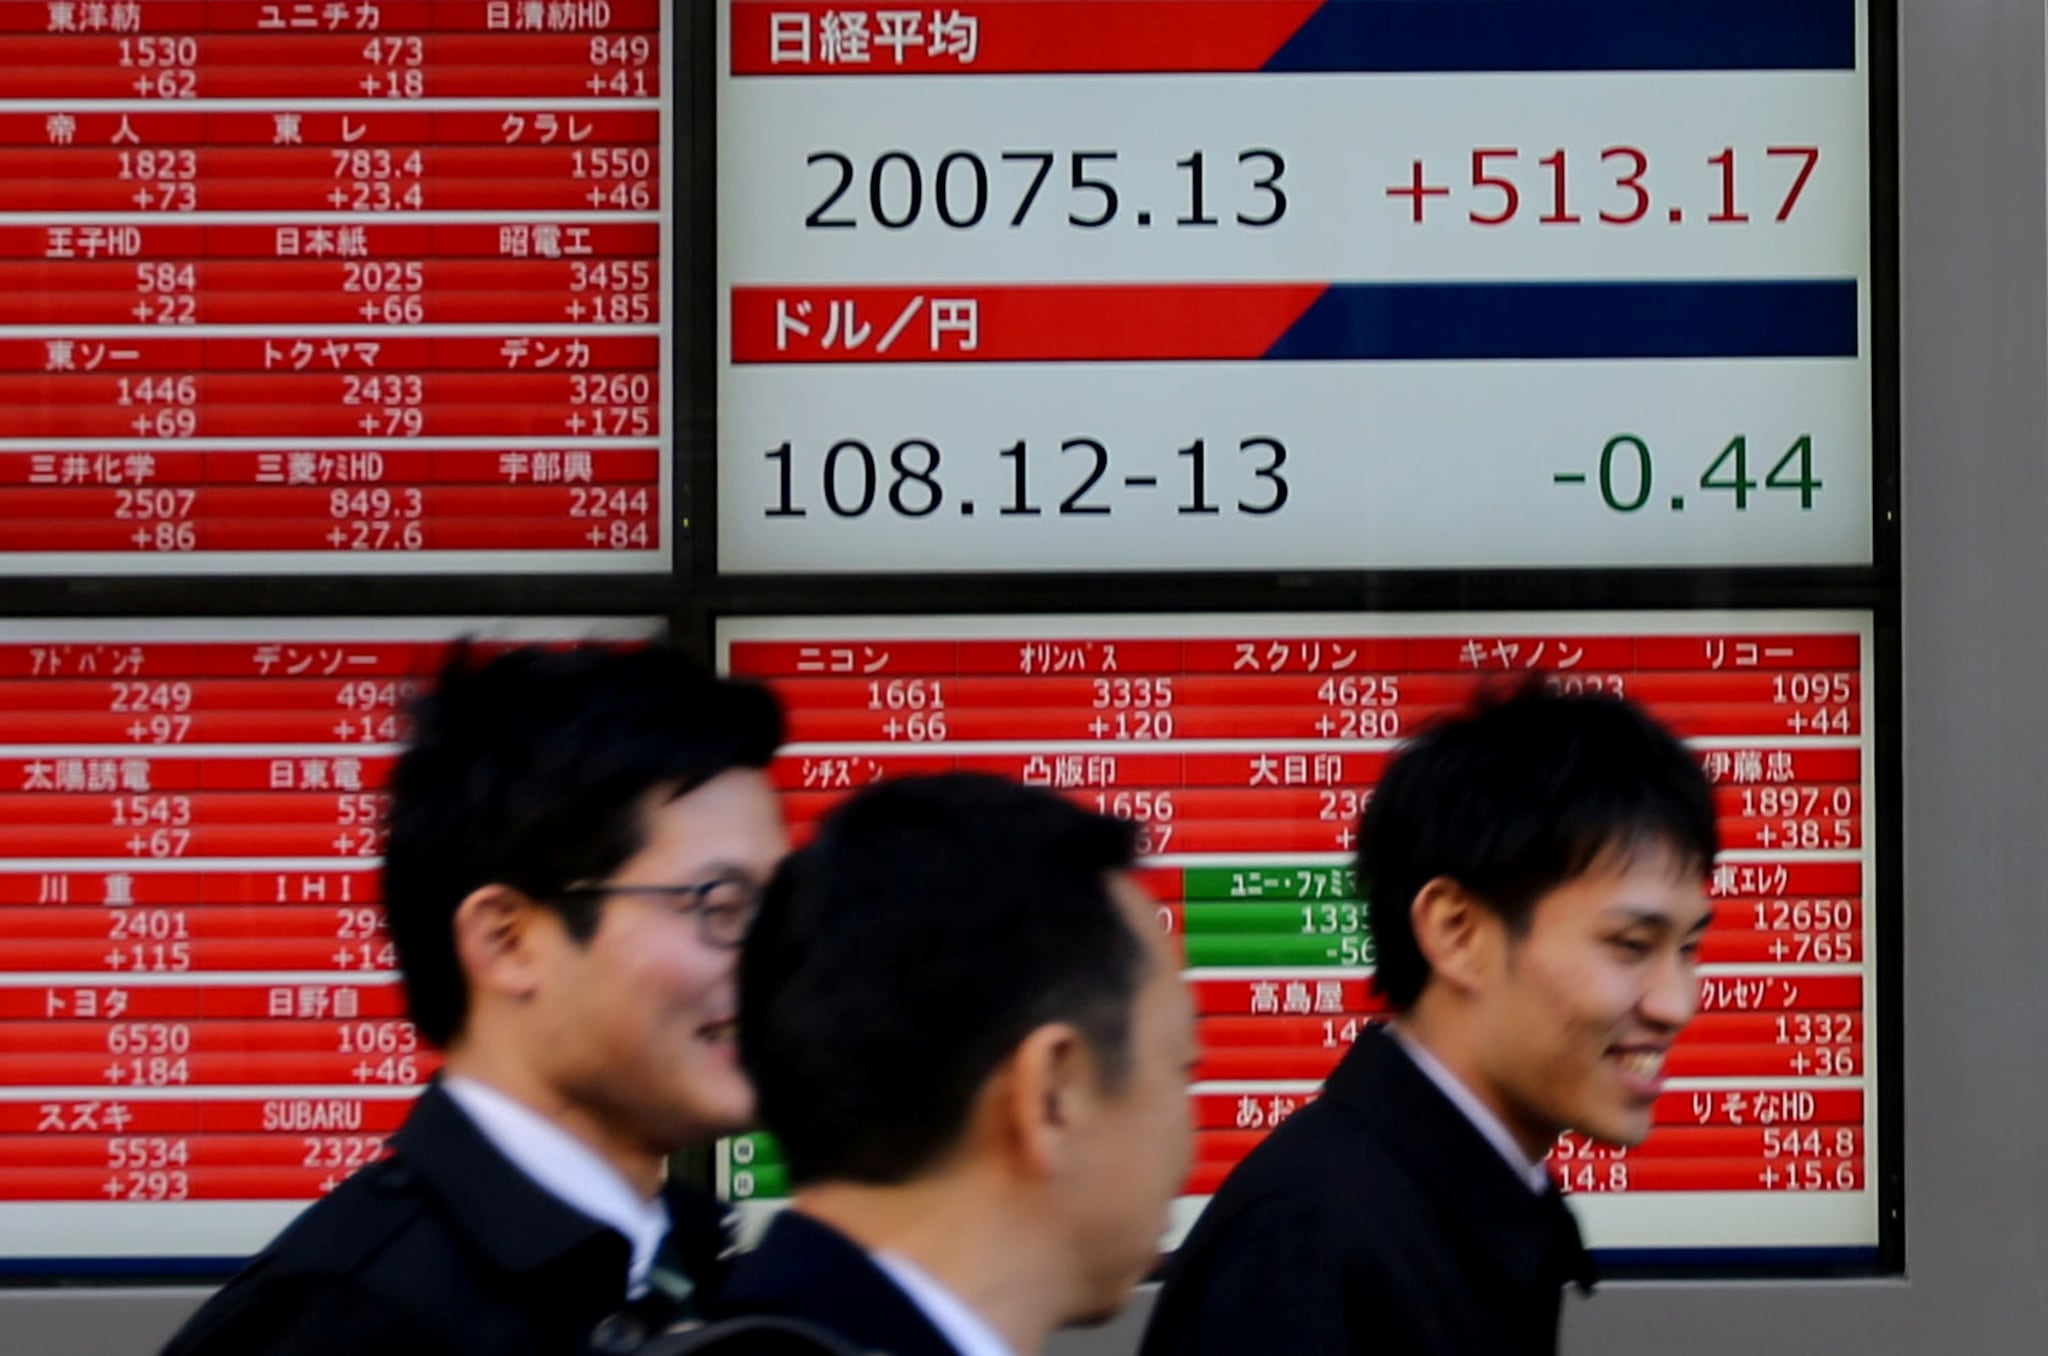 1. Asia: Asian stocks edged up on Tuesday as equity investors prepared for an expected US interest rate cut this week while heightened concerns in currency markets about a no-deal Brexit sent the pound to a 28-month low. MSCI's broadest index of Asia-Pacific shares outside Japan gained 0.15 percent. South Korea's KOSPI advanced 0.2 percent and Japan's Nikkei added 0.7 percent. Australian stocks climbed as much as 0.7 percent to touch a record high. (Image: Reuters)